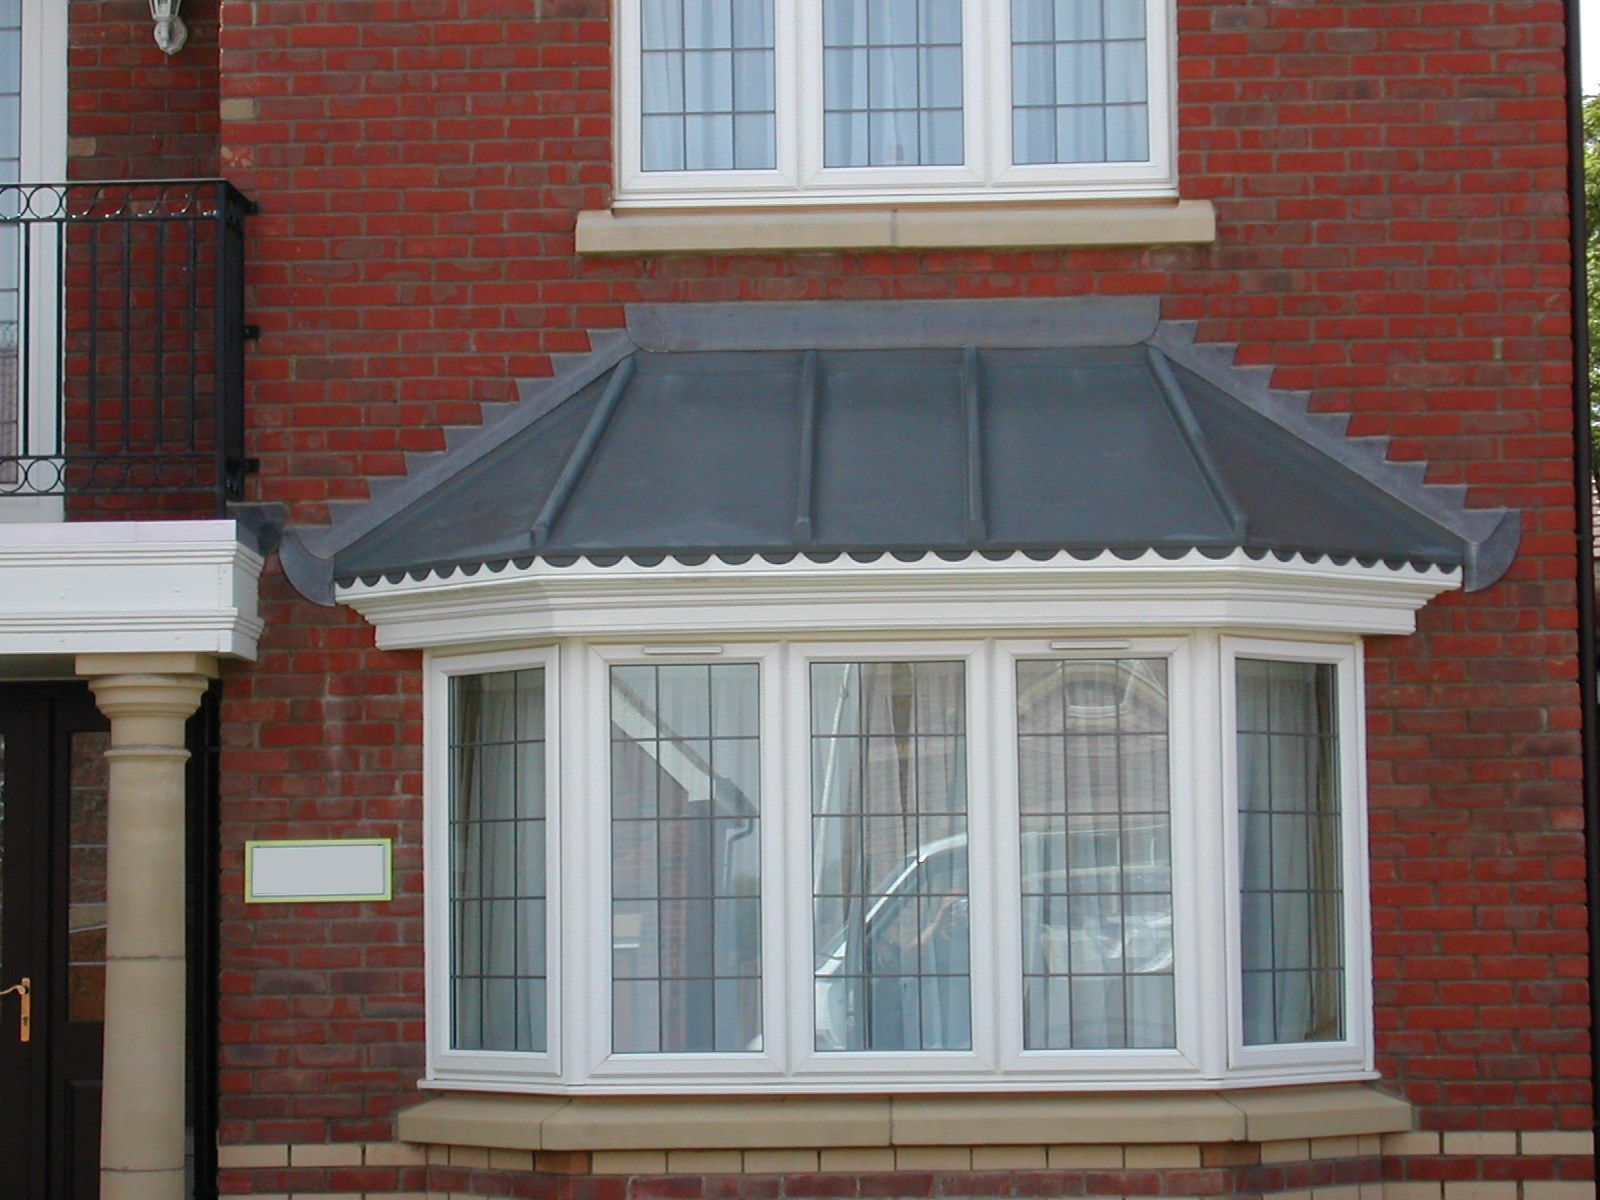 bay window canopy - Google Search & bay window canopy - Google Search | ventanales | Pinterest ...